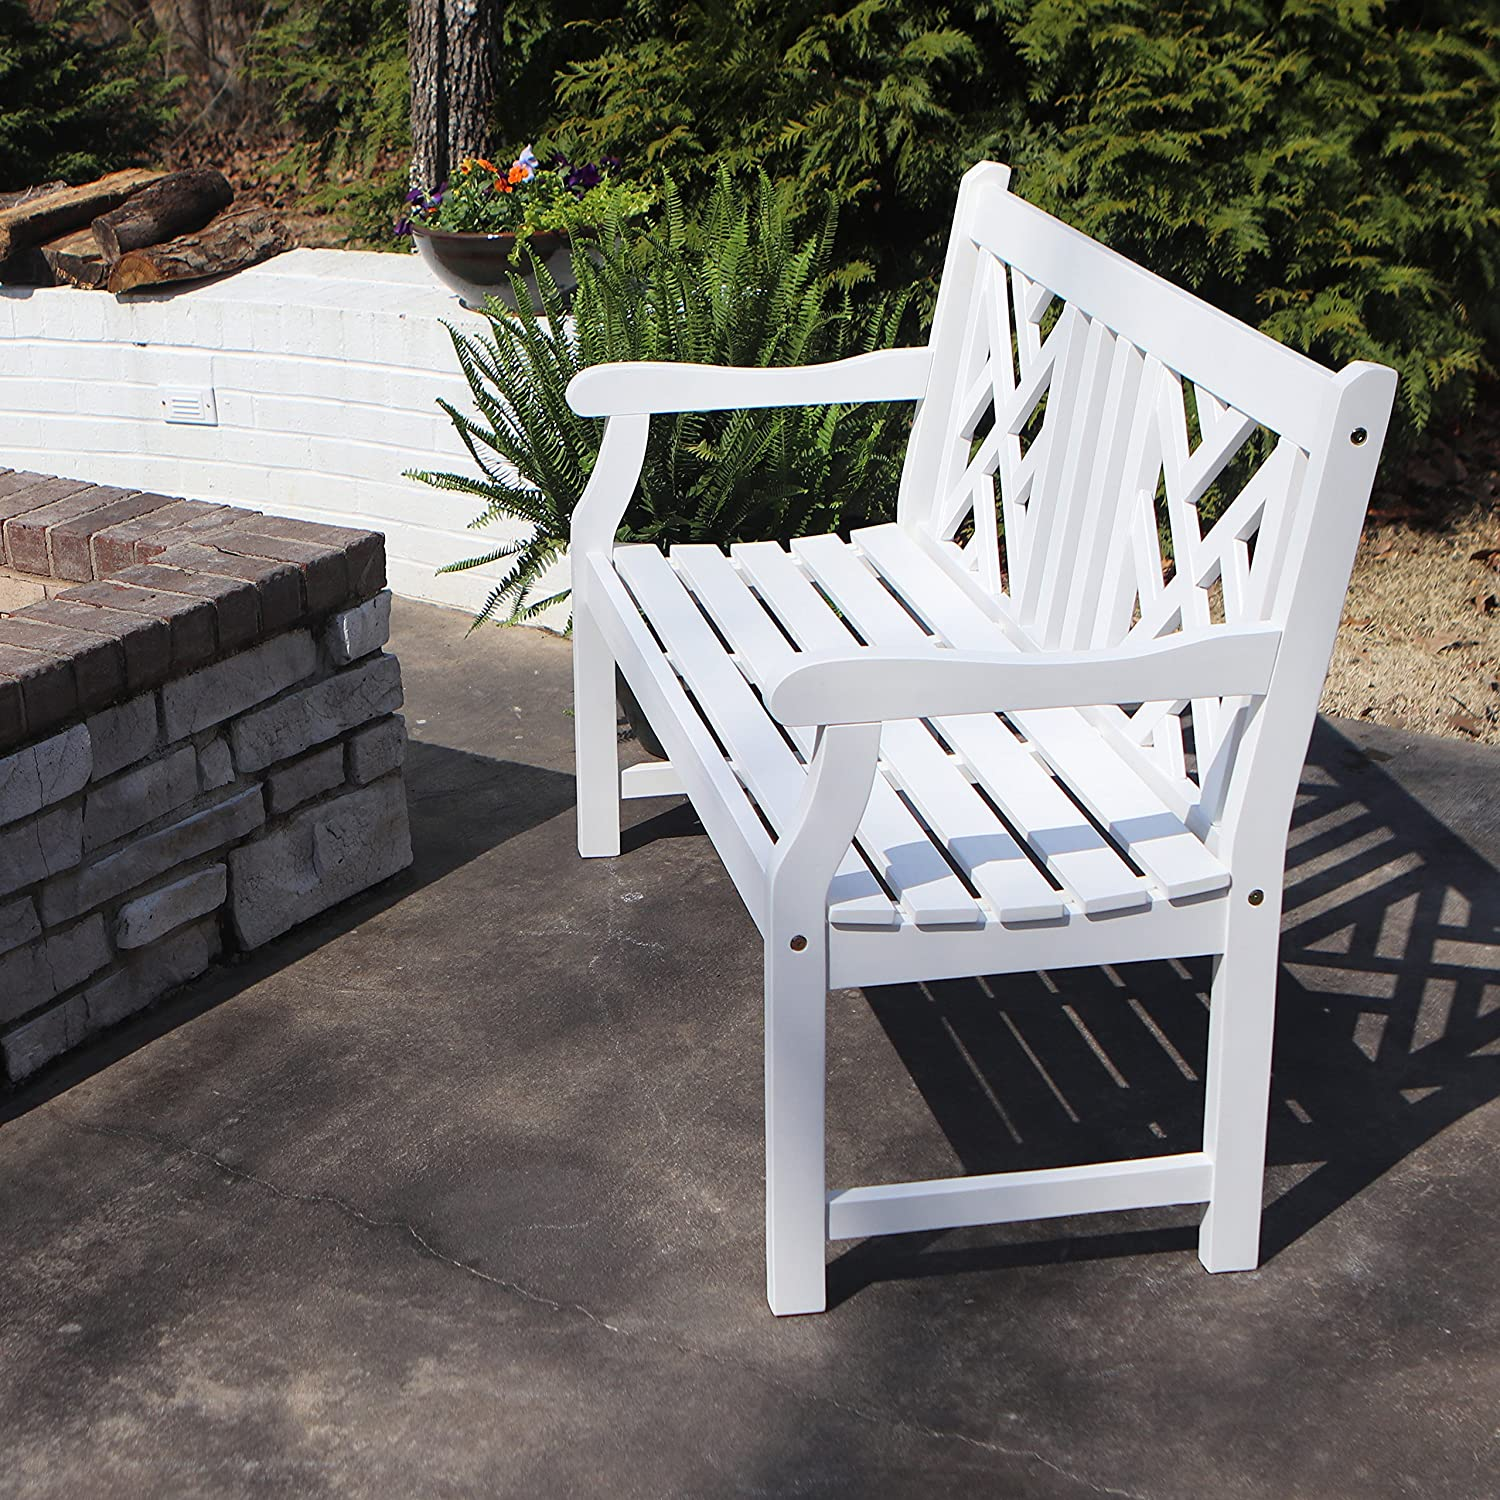 Décor Therapy FR8585 Outdoor Bench, White